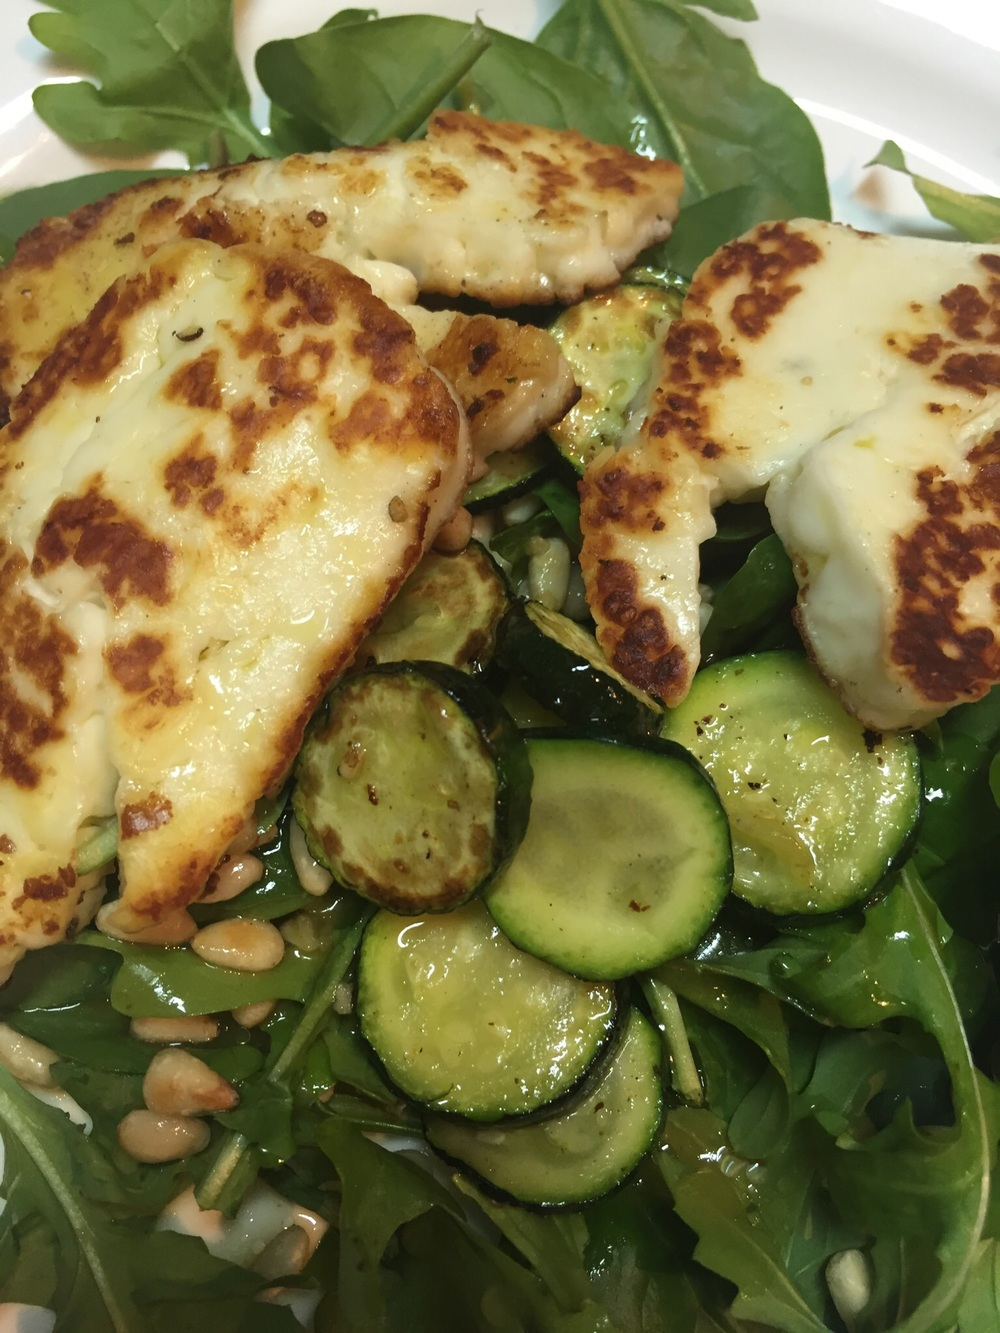 Haloumi aka squeaky cheese, the star of my salad.